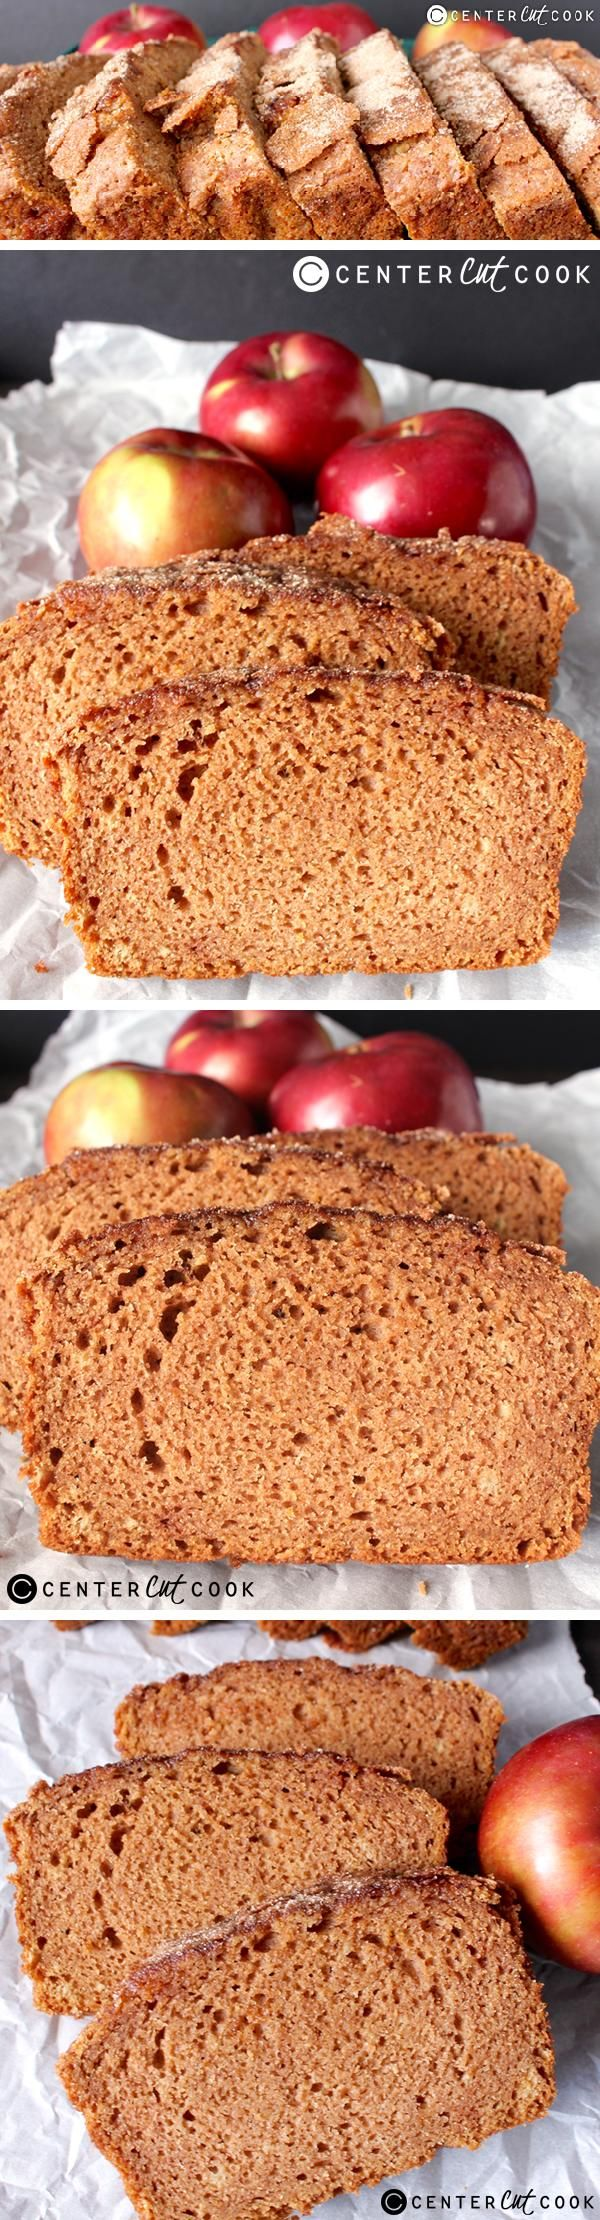 This CINNAMON APPLE BREAD is made with applesauce which keeps it super moist, has the best crackly cinnamon sugar topping, and is so easy to make. This quick bread is so delicious!